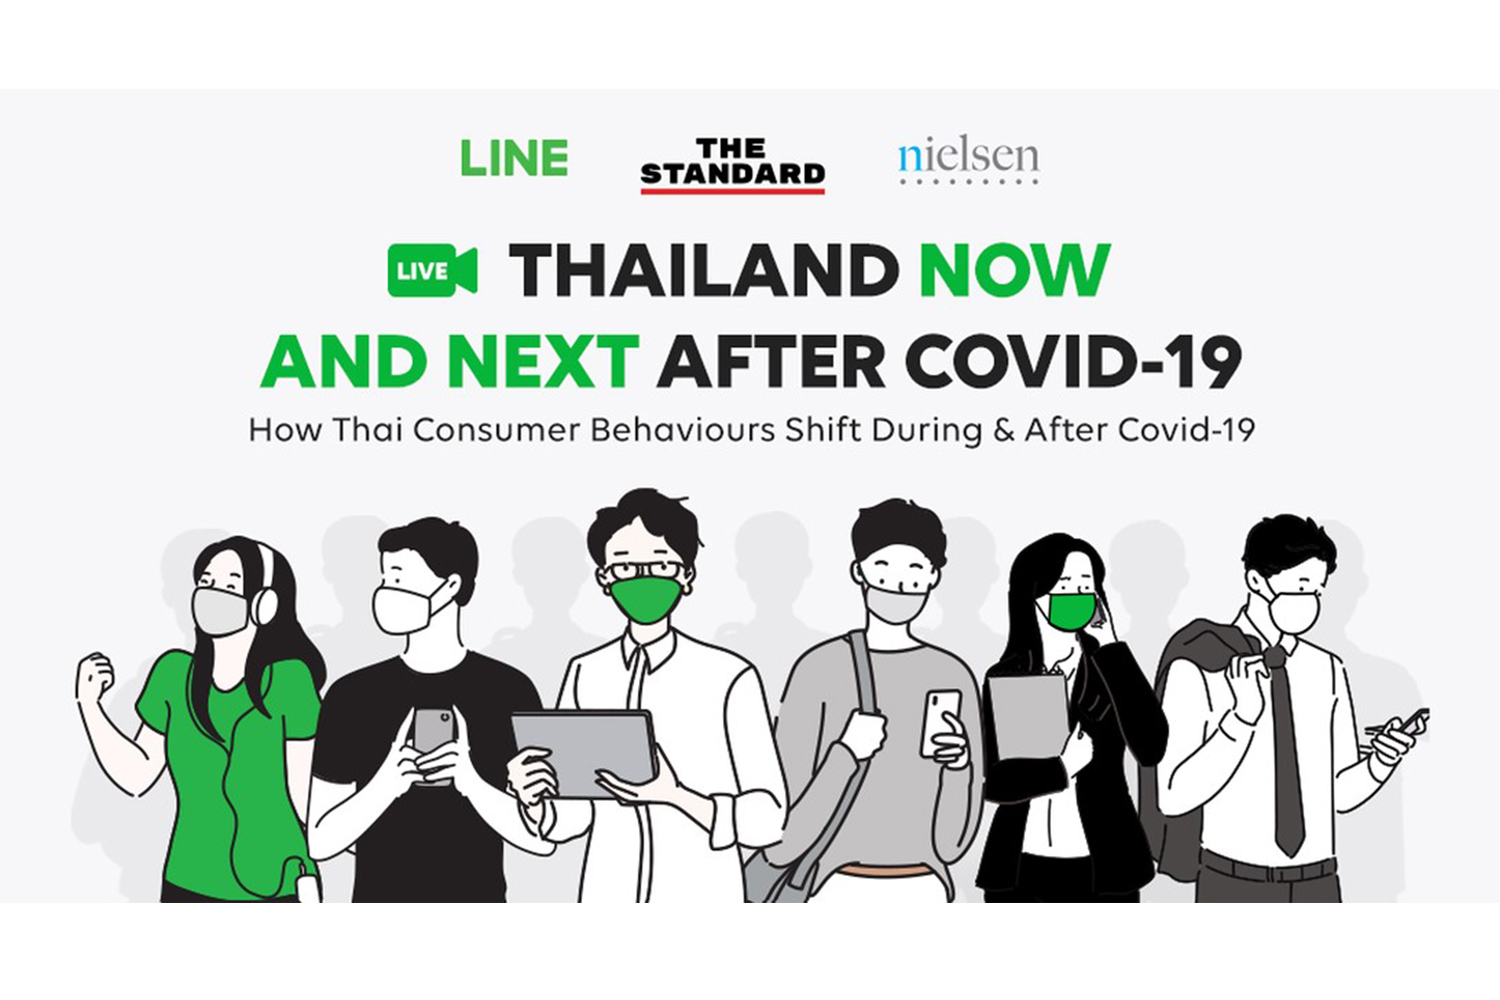 Line Ignites Thai Businesses For New Consumer Behaviours In Light